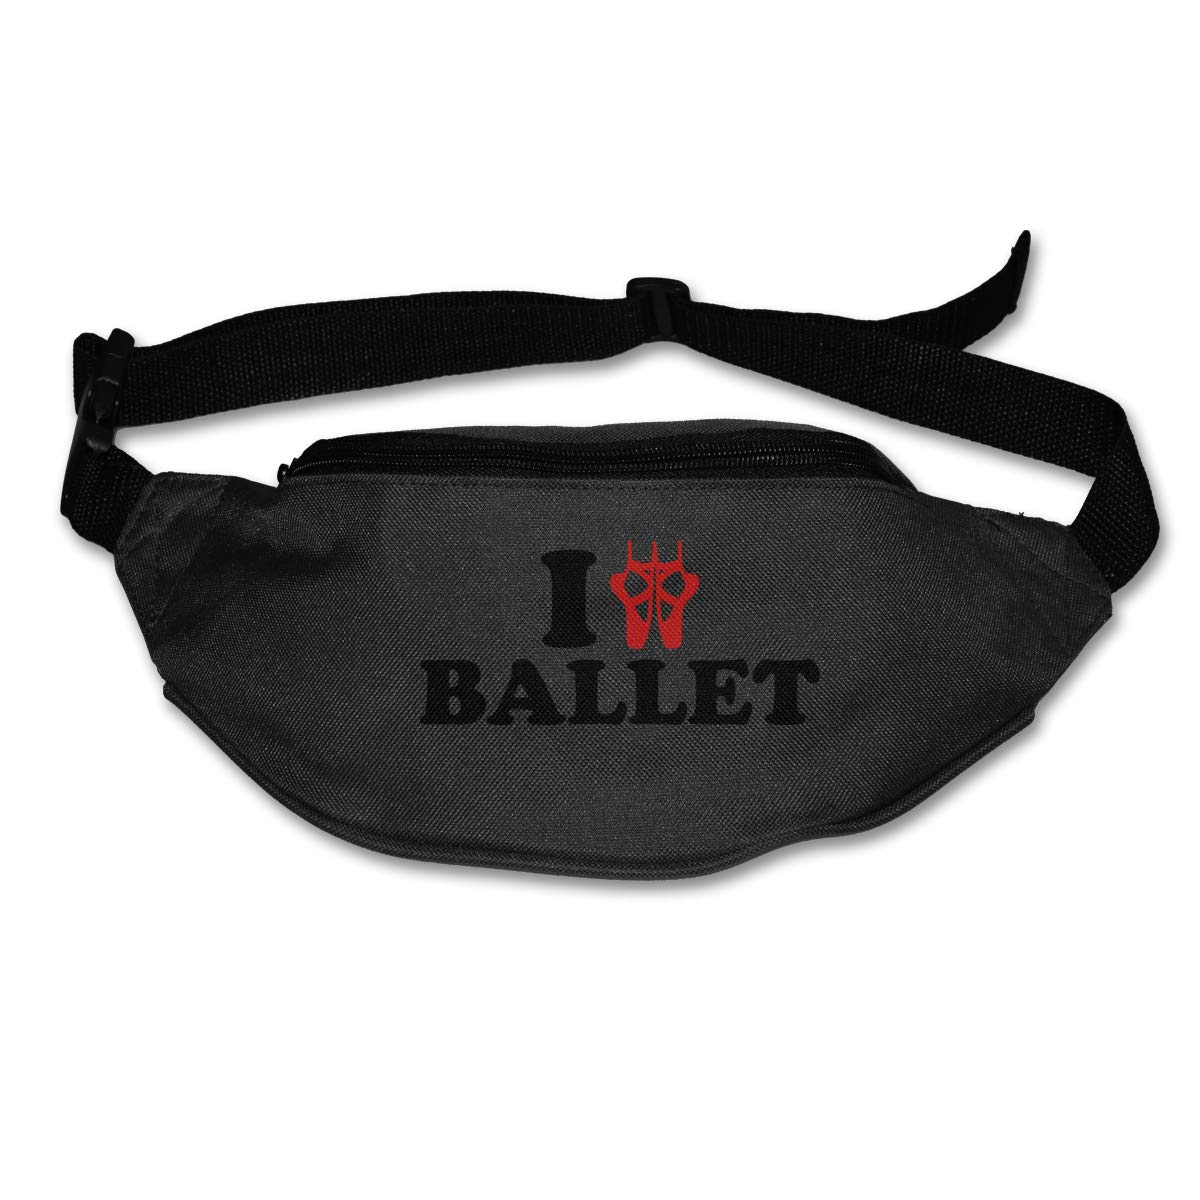 I Ballet Shoes Sport Waist Pack Fanny Pack Adjustable For Travel